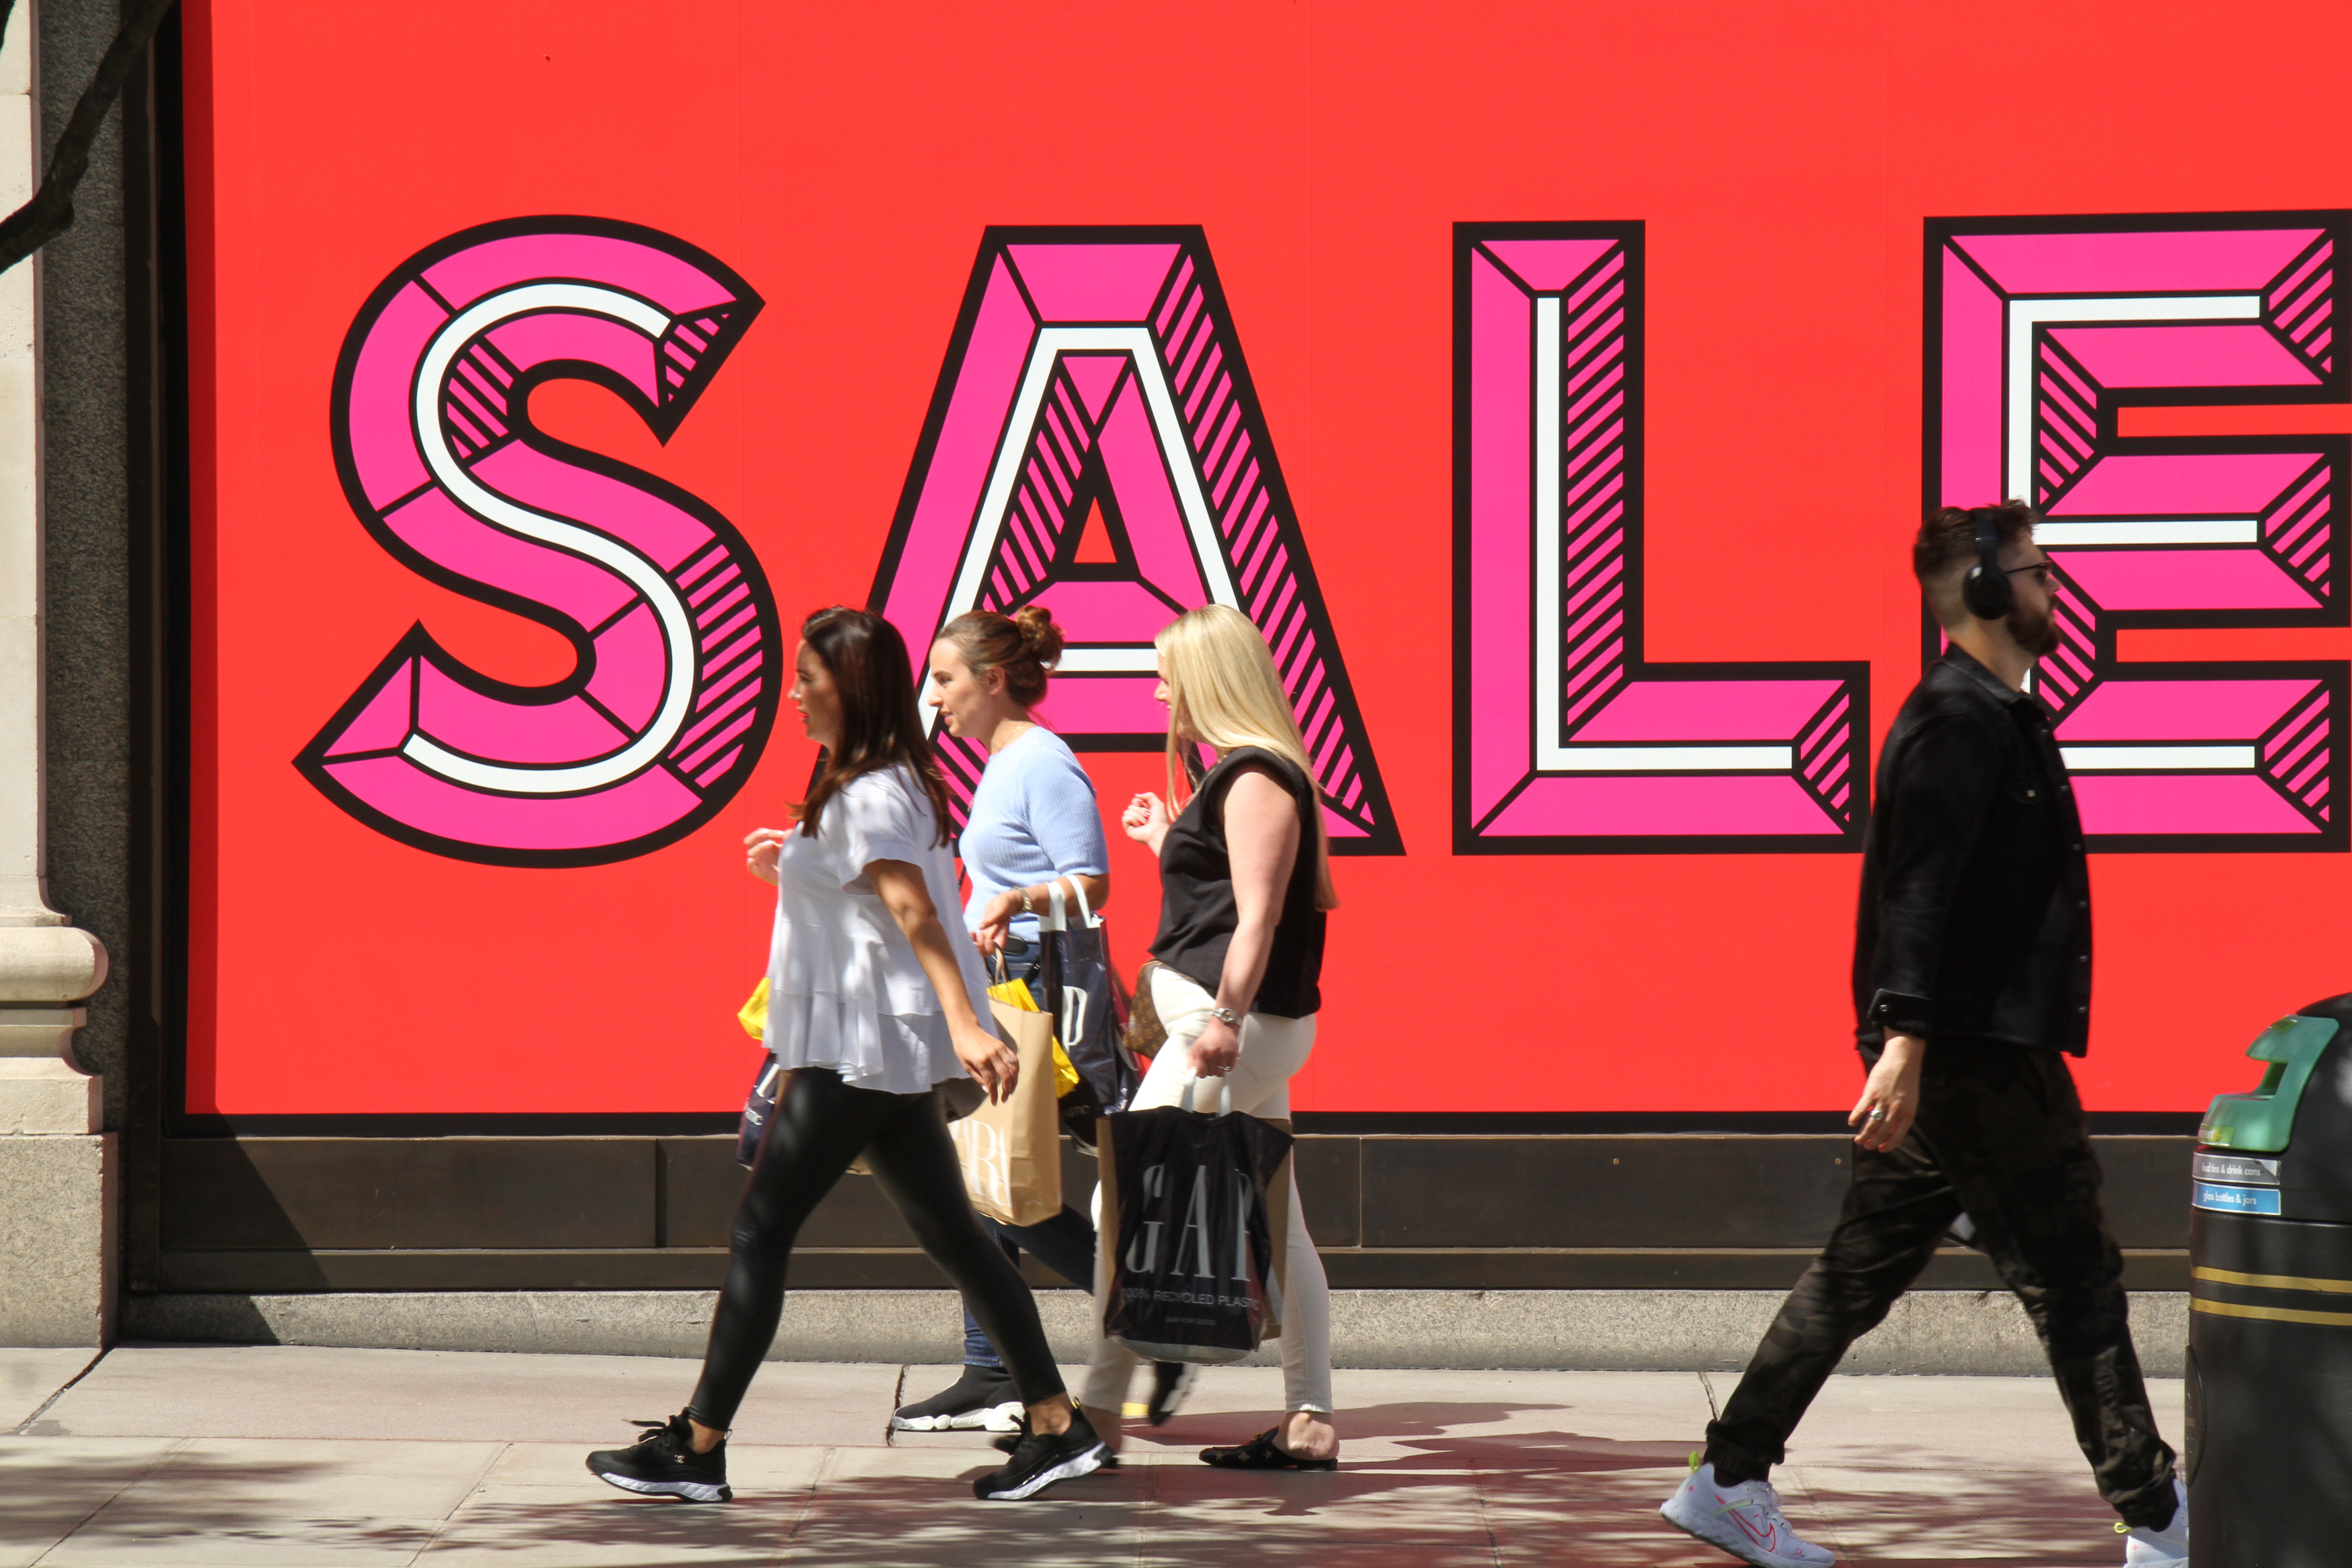 Shoppers walk past a SALE sign at the Sefrdiges store amid coronavirus crisis. Londoners have slowly began to go back to 'normal' with shops reopened on Oxford Street. This week the government has advised on the opening of gyms and pools from 11 July. (Photo by David Mbiyu / SOPA Images/Sipa USA)